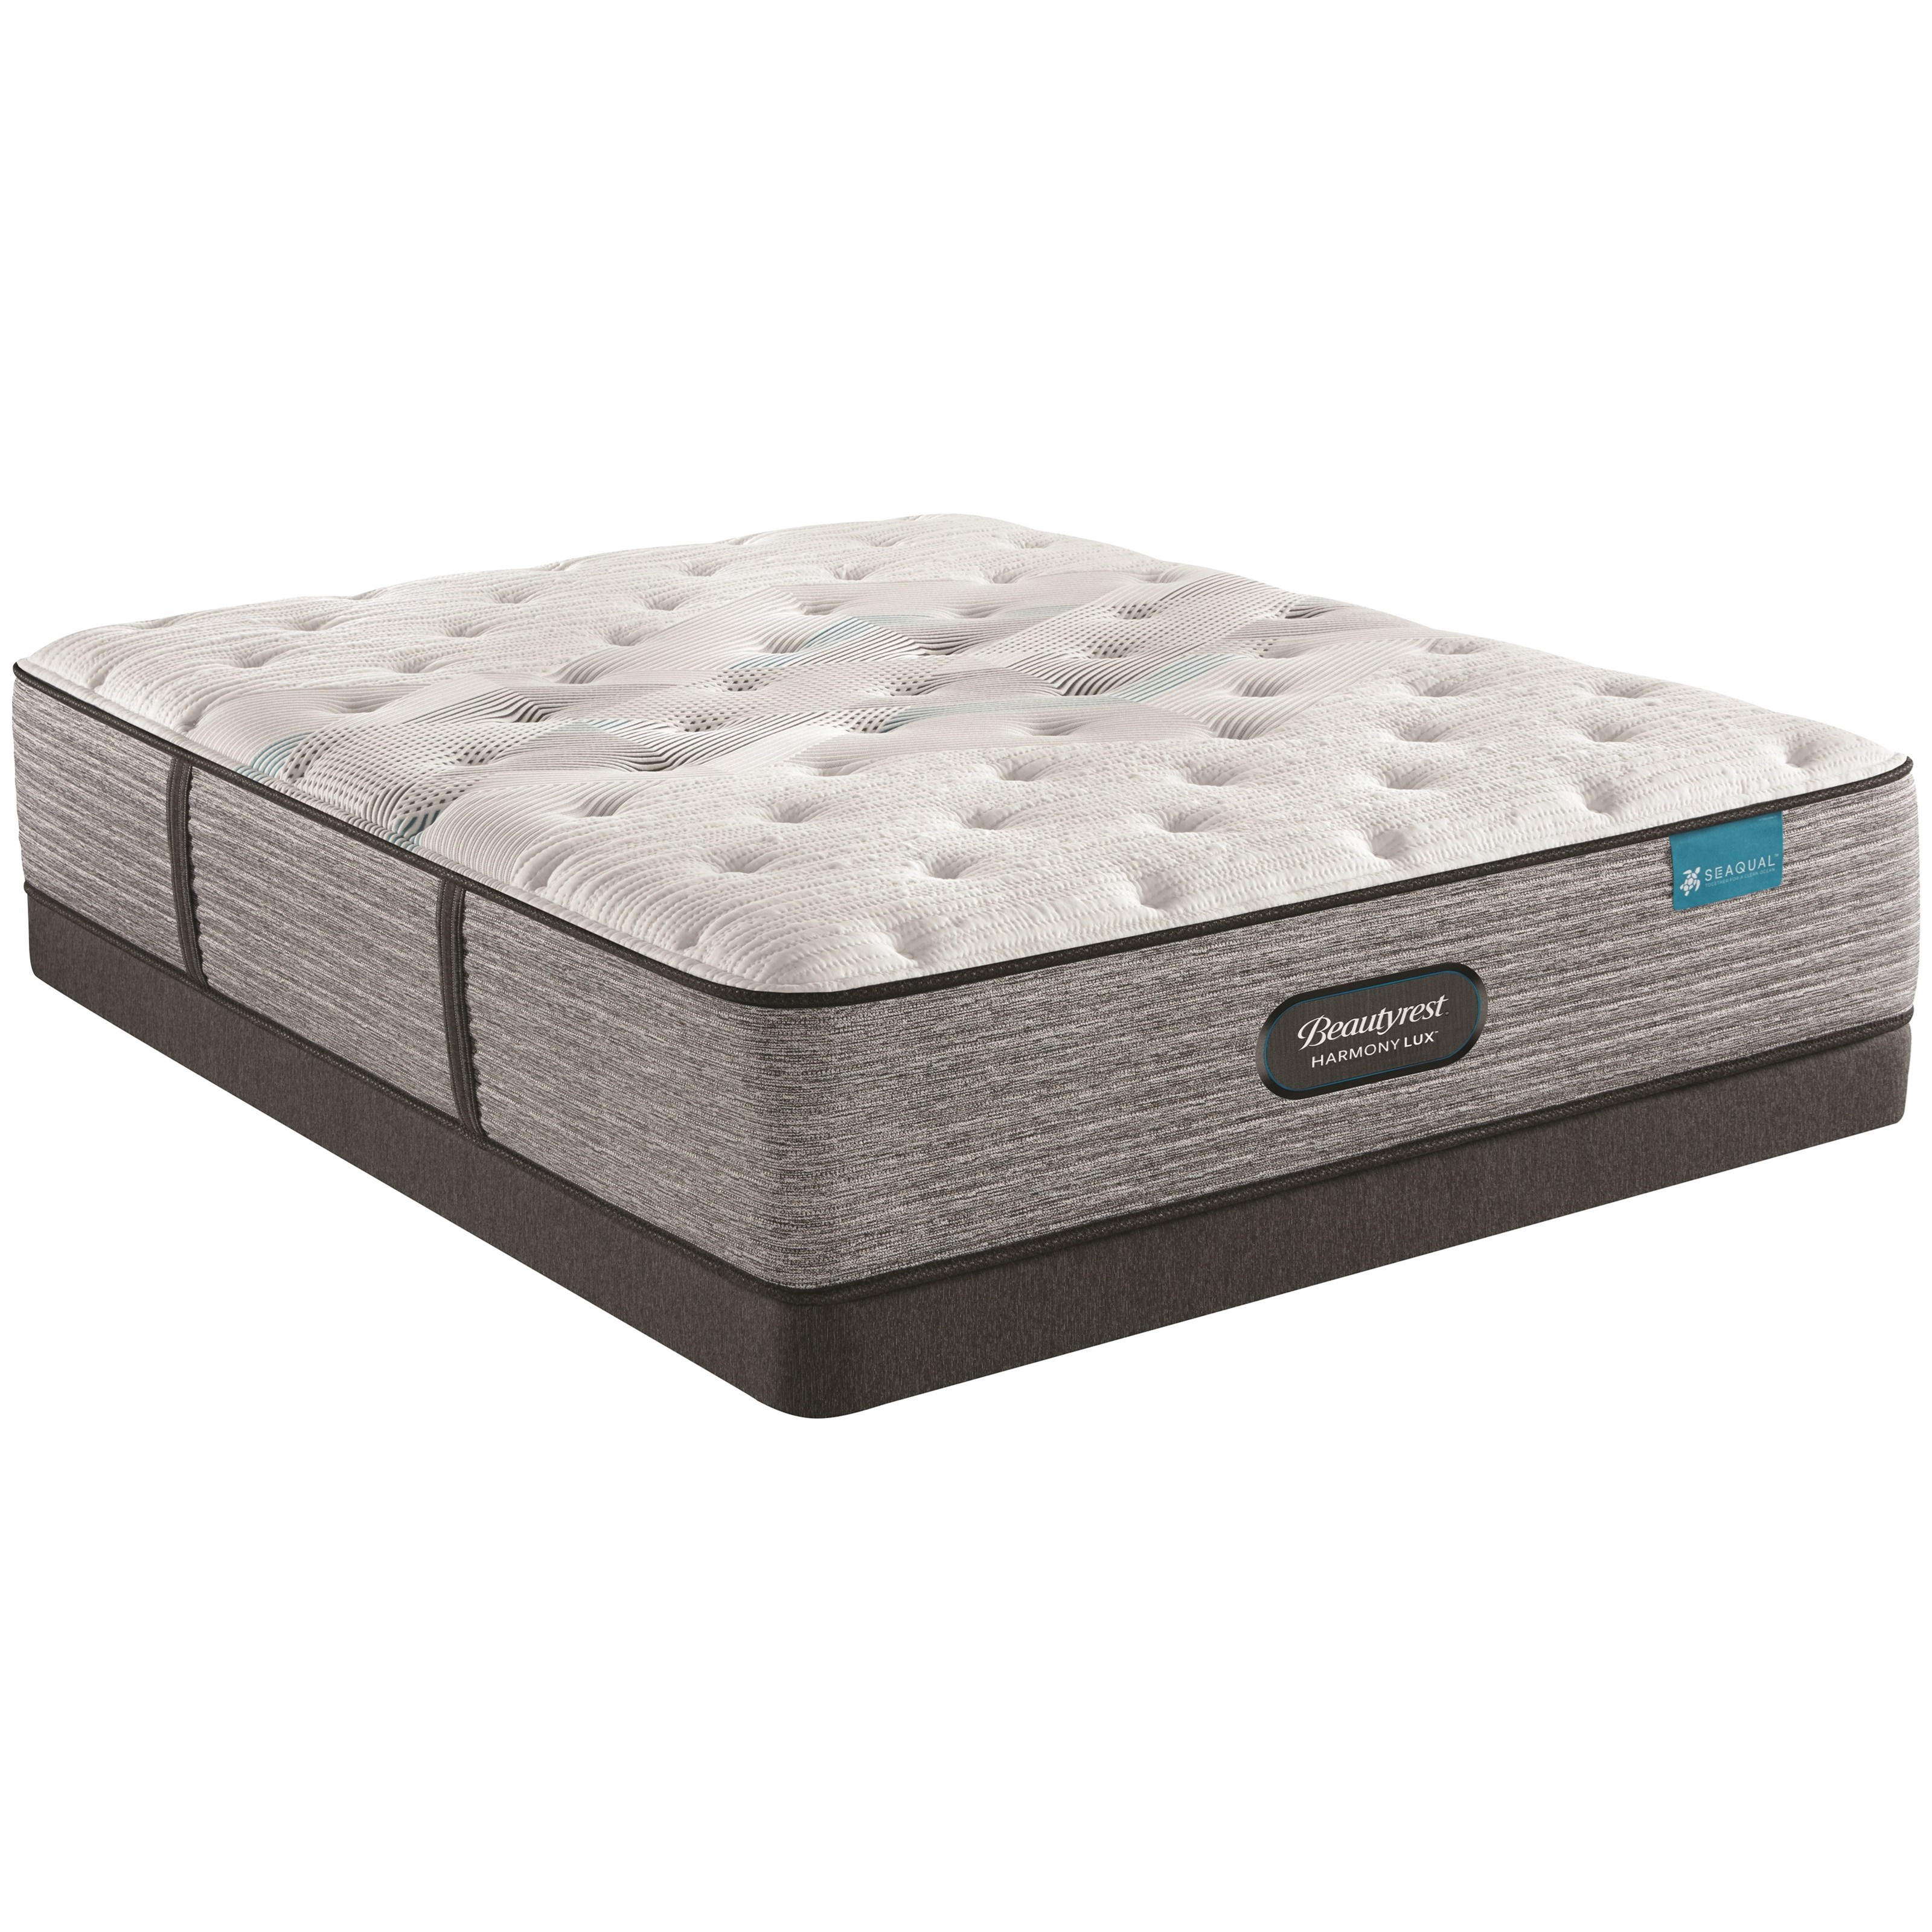 "Carbon Series Plush Queen 13 3/4"" Plush Low Profile Set by Beautyrest at Walker's Mattress"